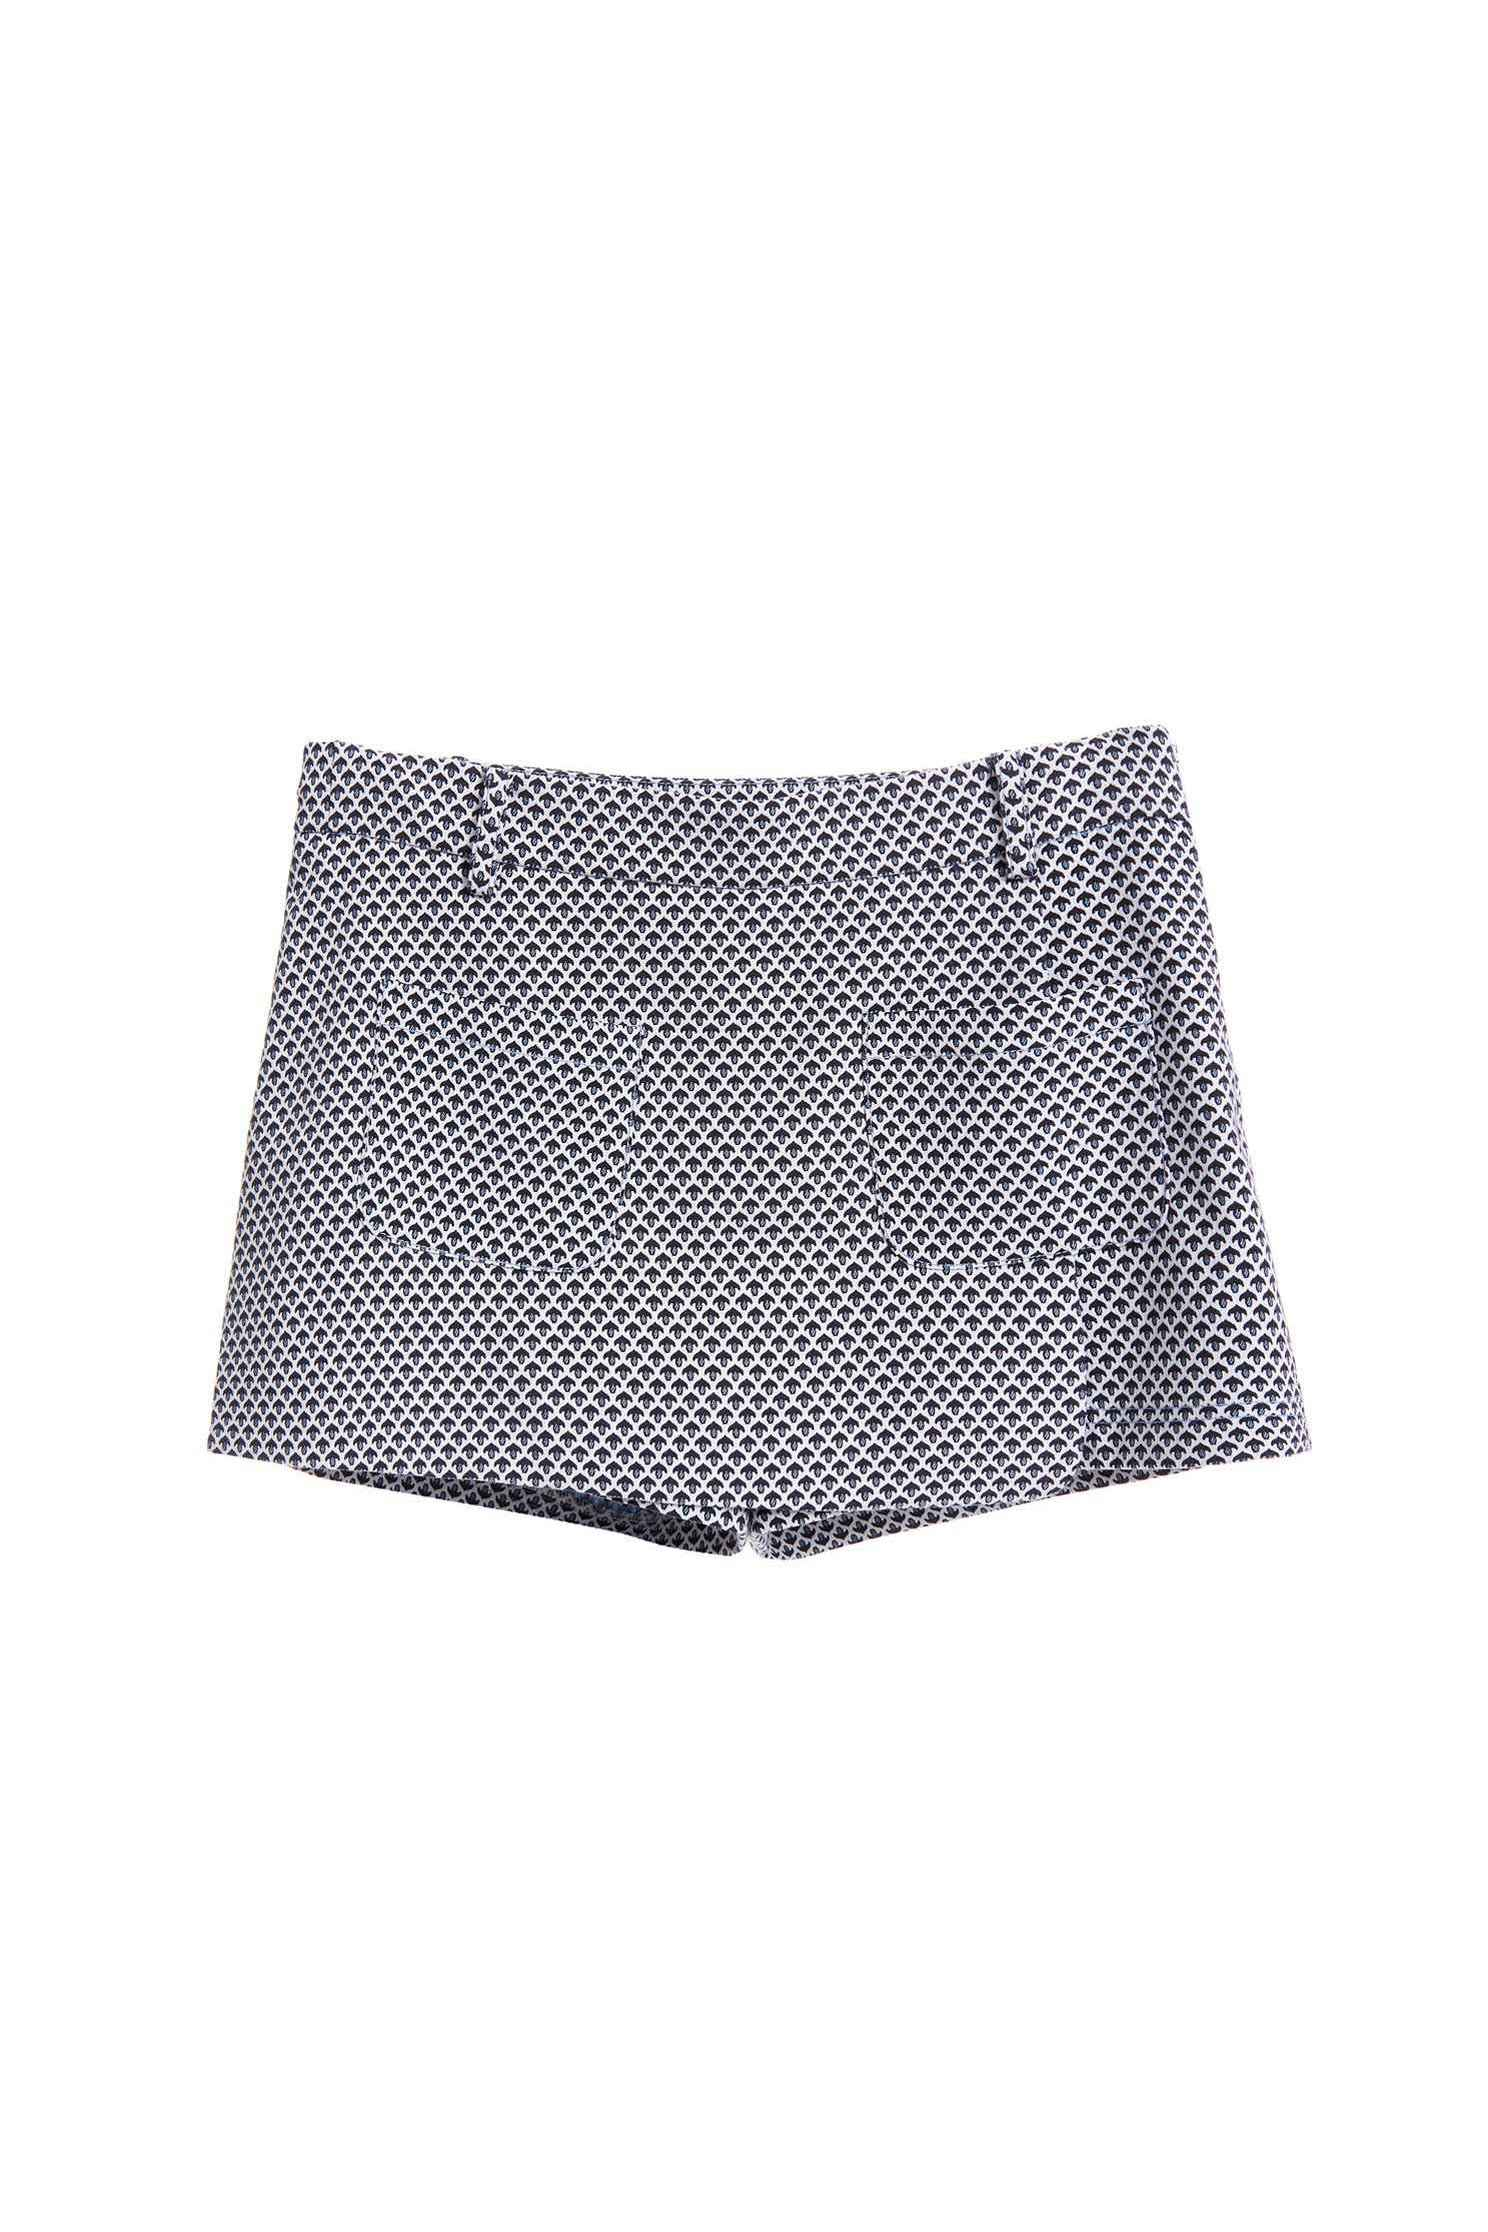 Modern graceful shorts